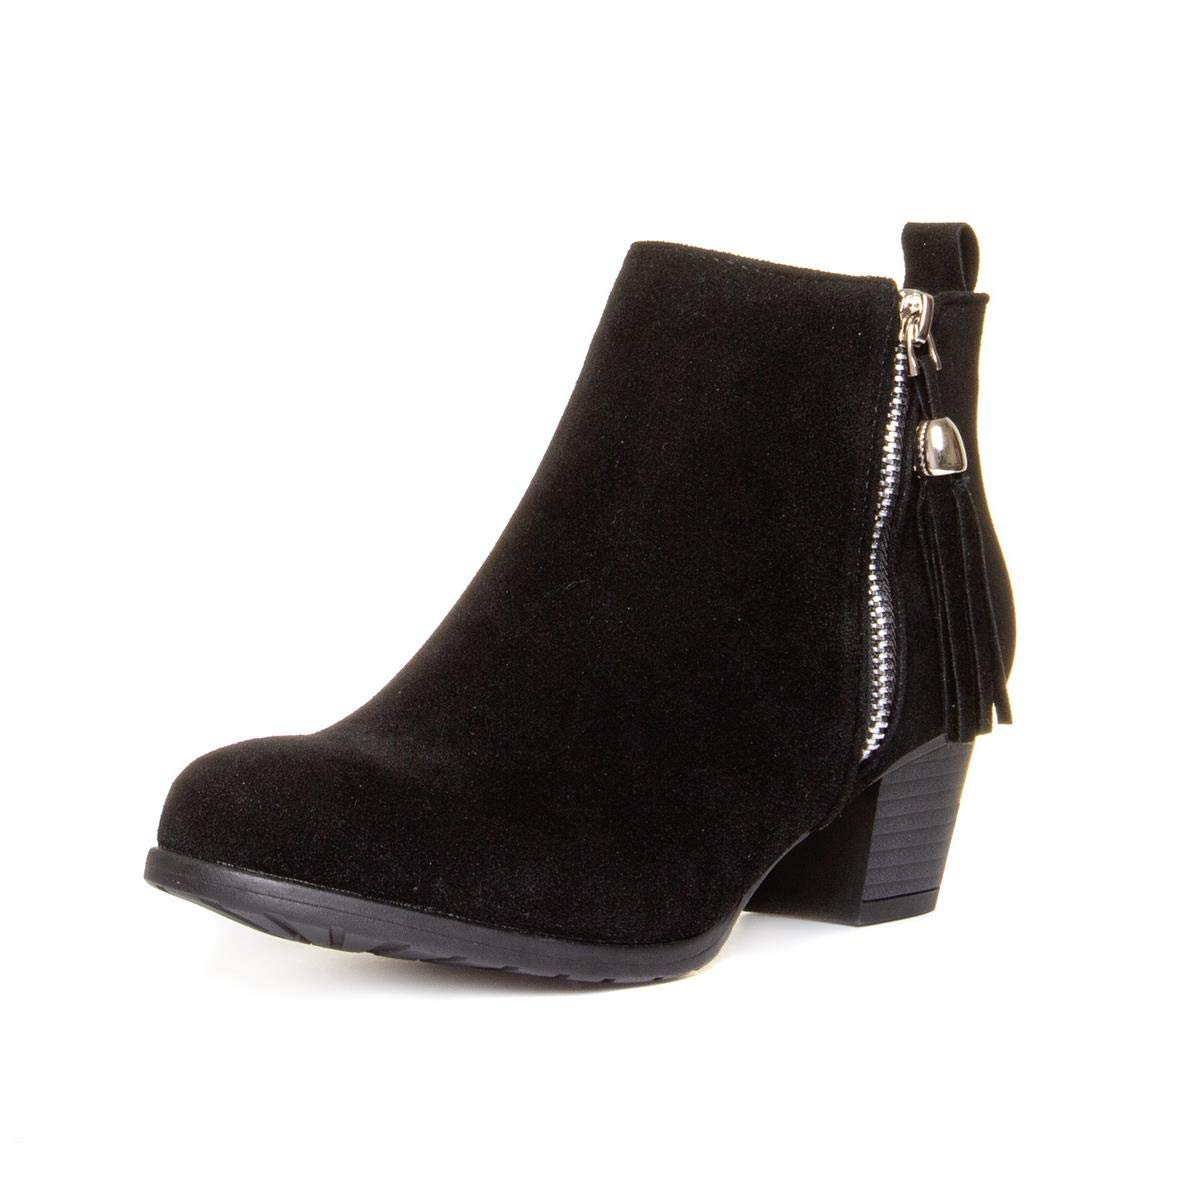 LILLEY Womens Black Faux Suede Heeled